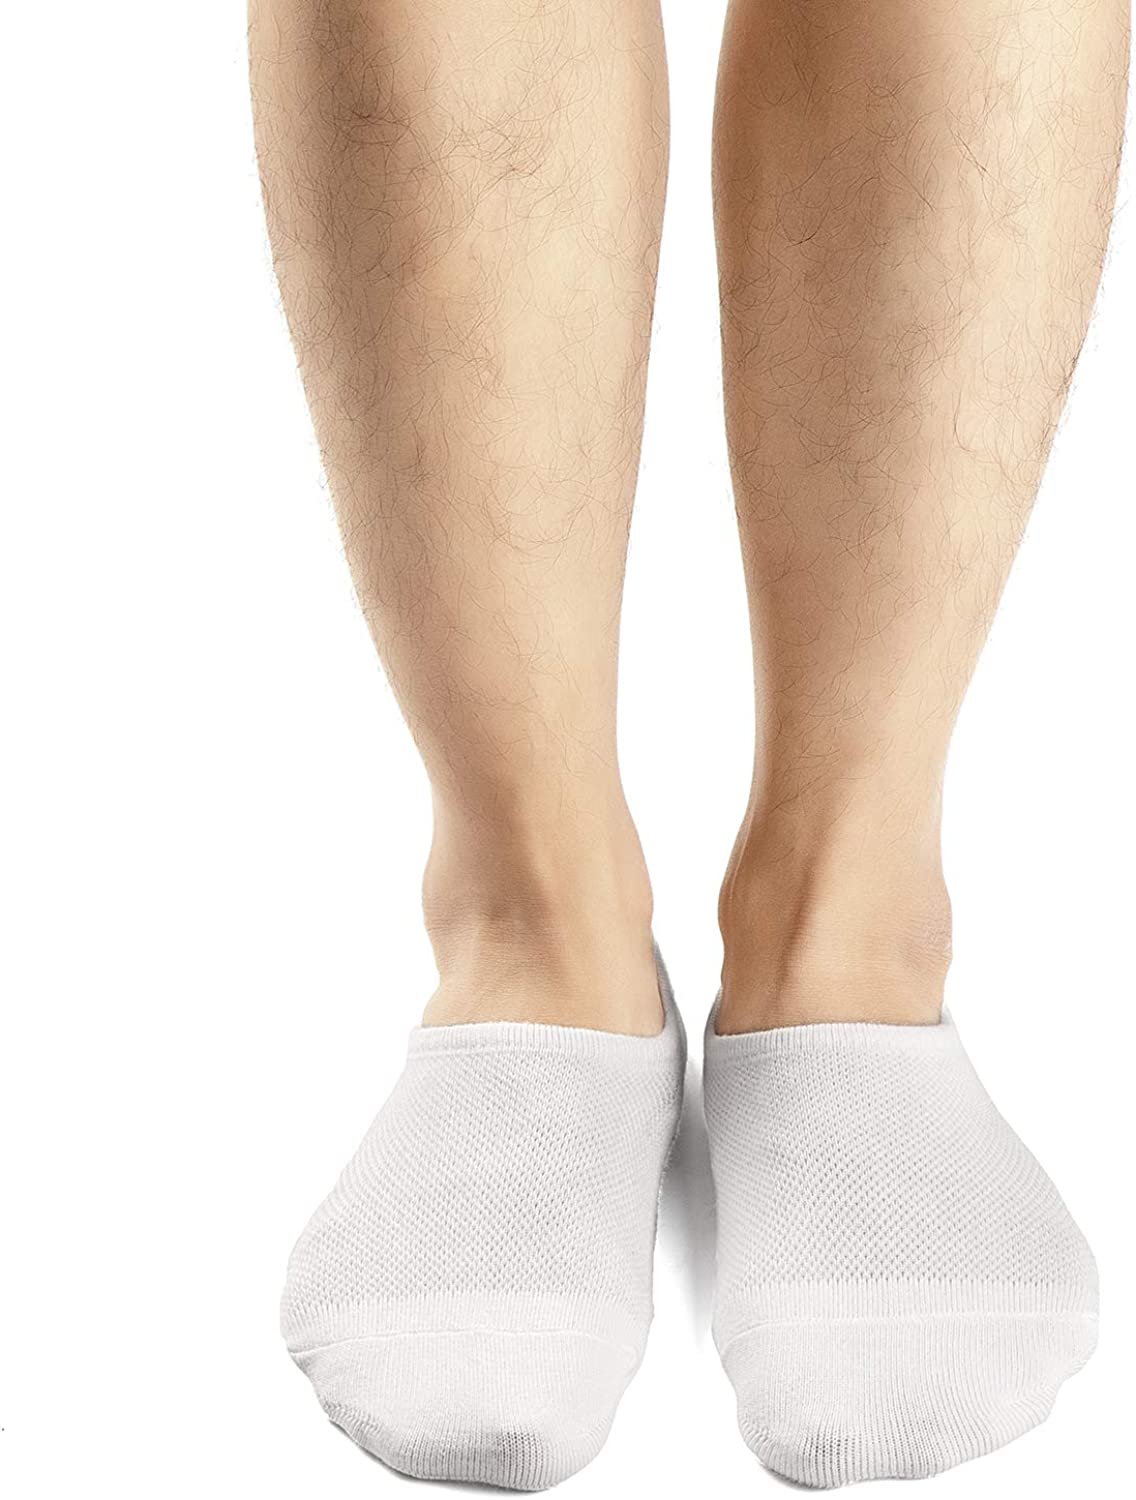 Mottee&Zconia Mens Low Cut No Show Casual Comfy Non-Slip Socks 5 pack White Size M